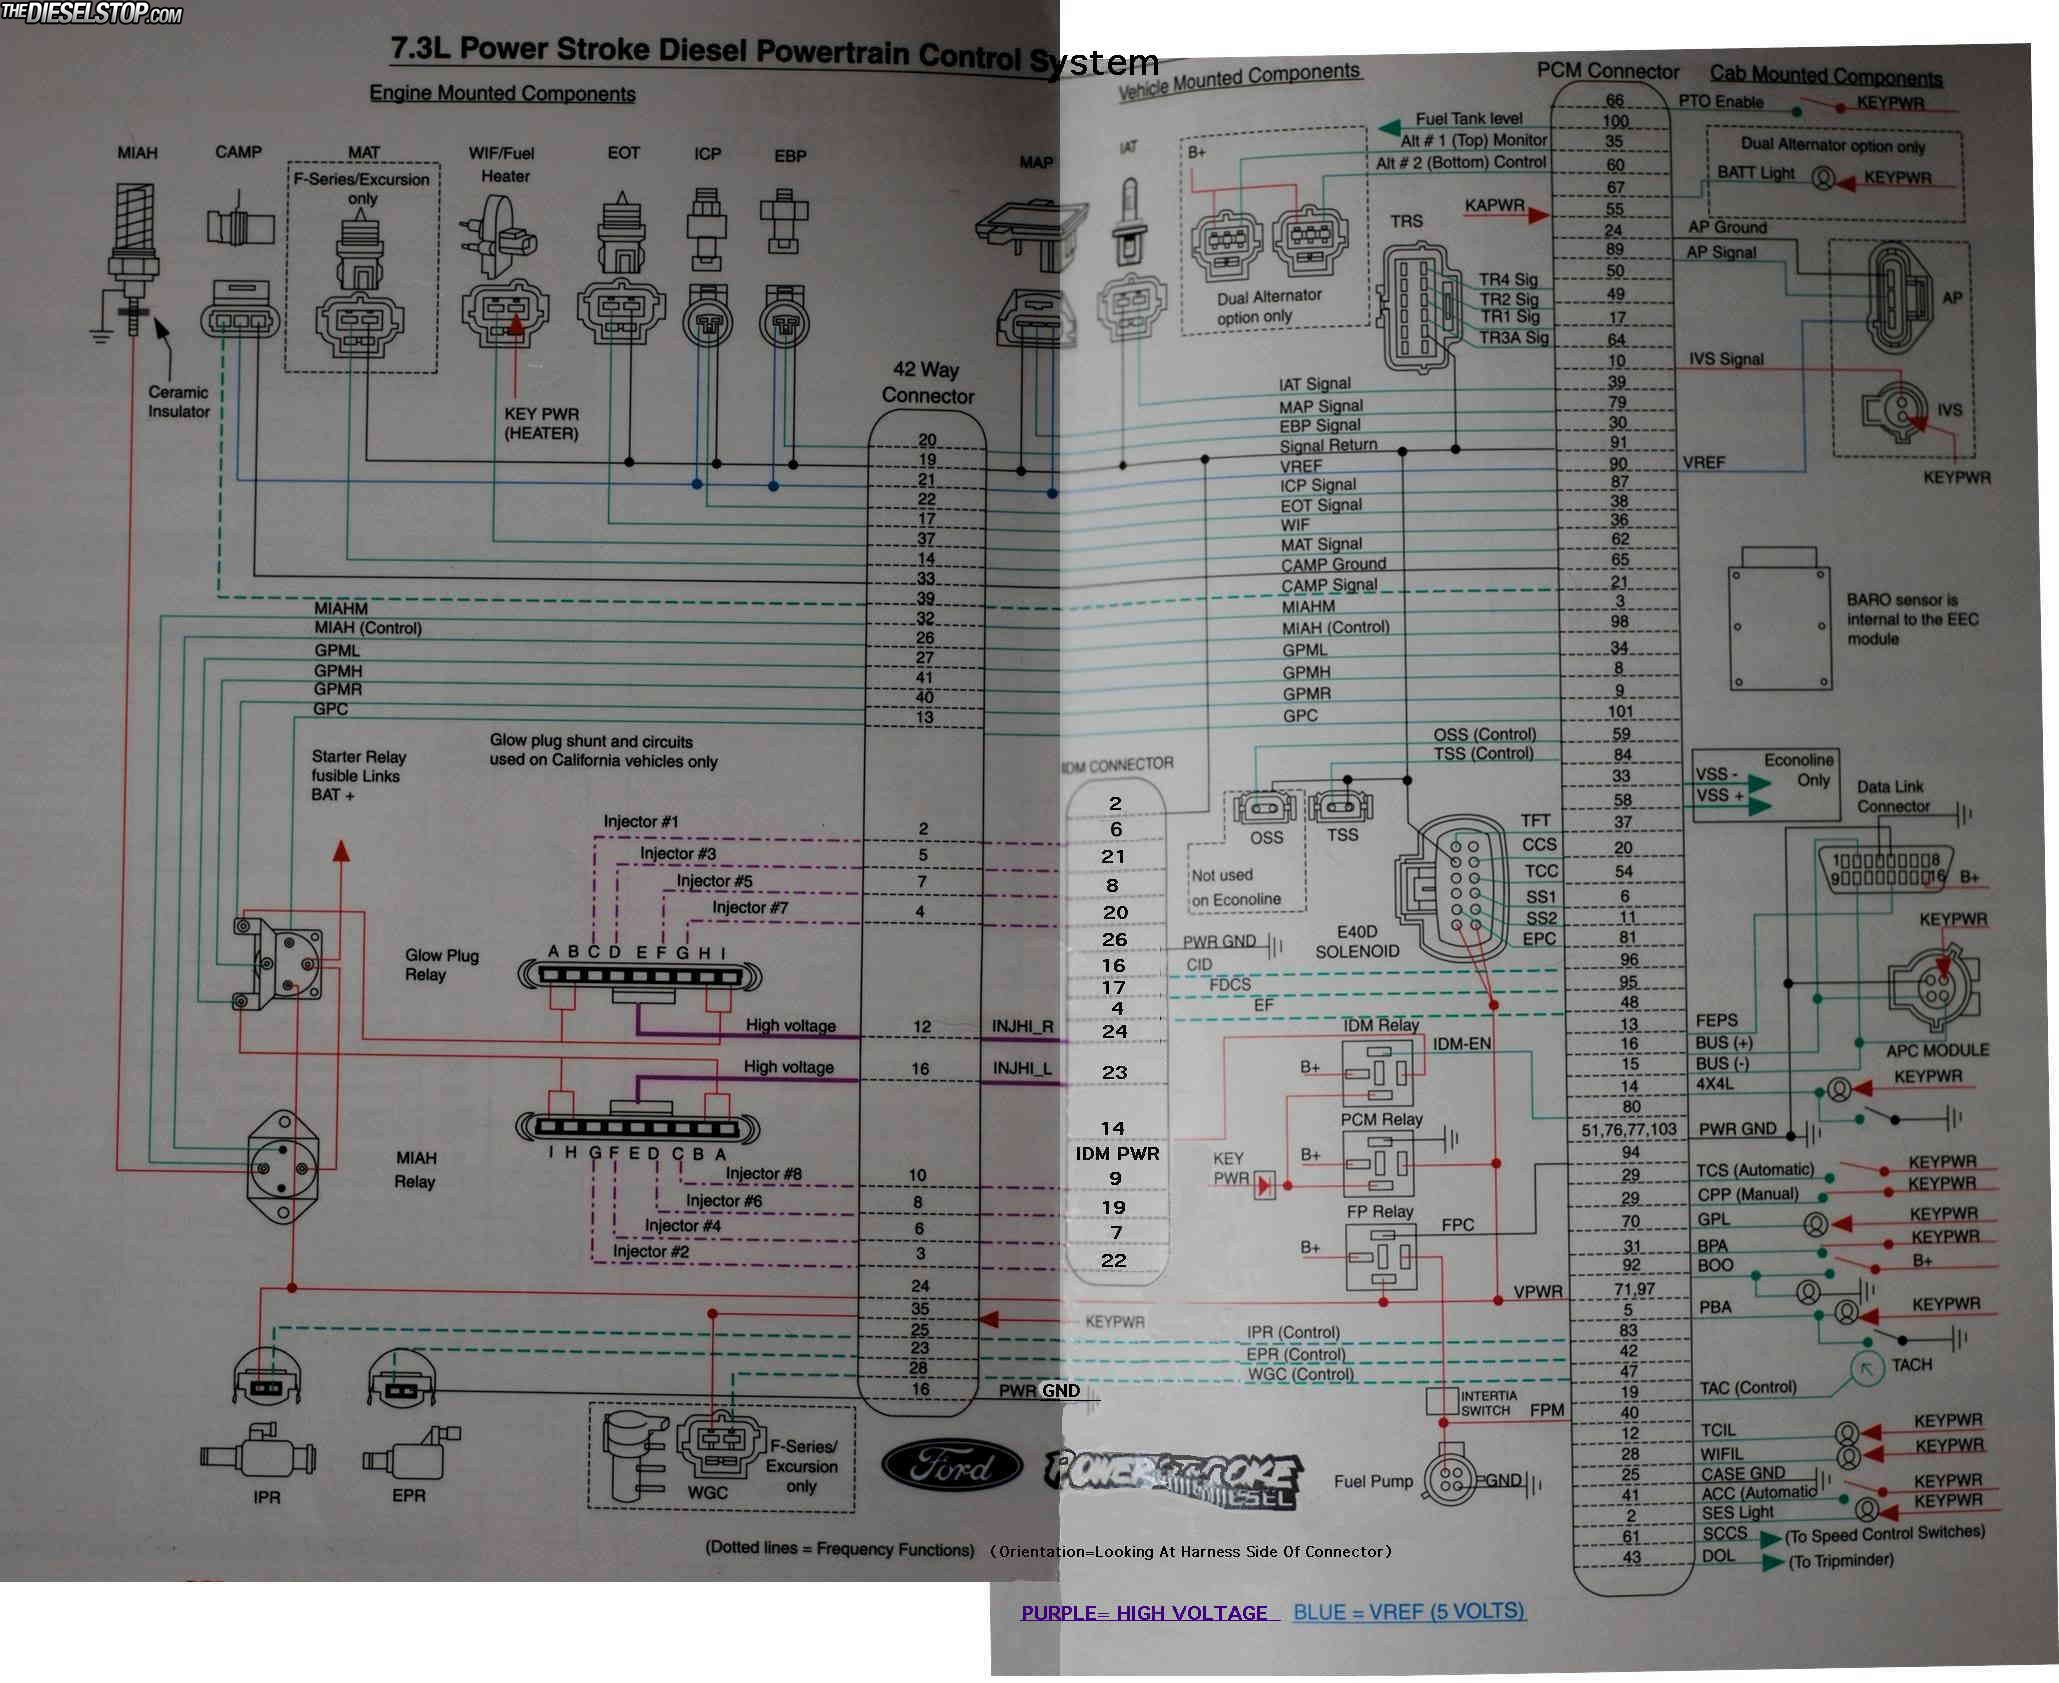 7.3L Wiring Schematic Printable, Very Handy. - Diesel Forum - 7.3 Powerstroke Wiring Diagram